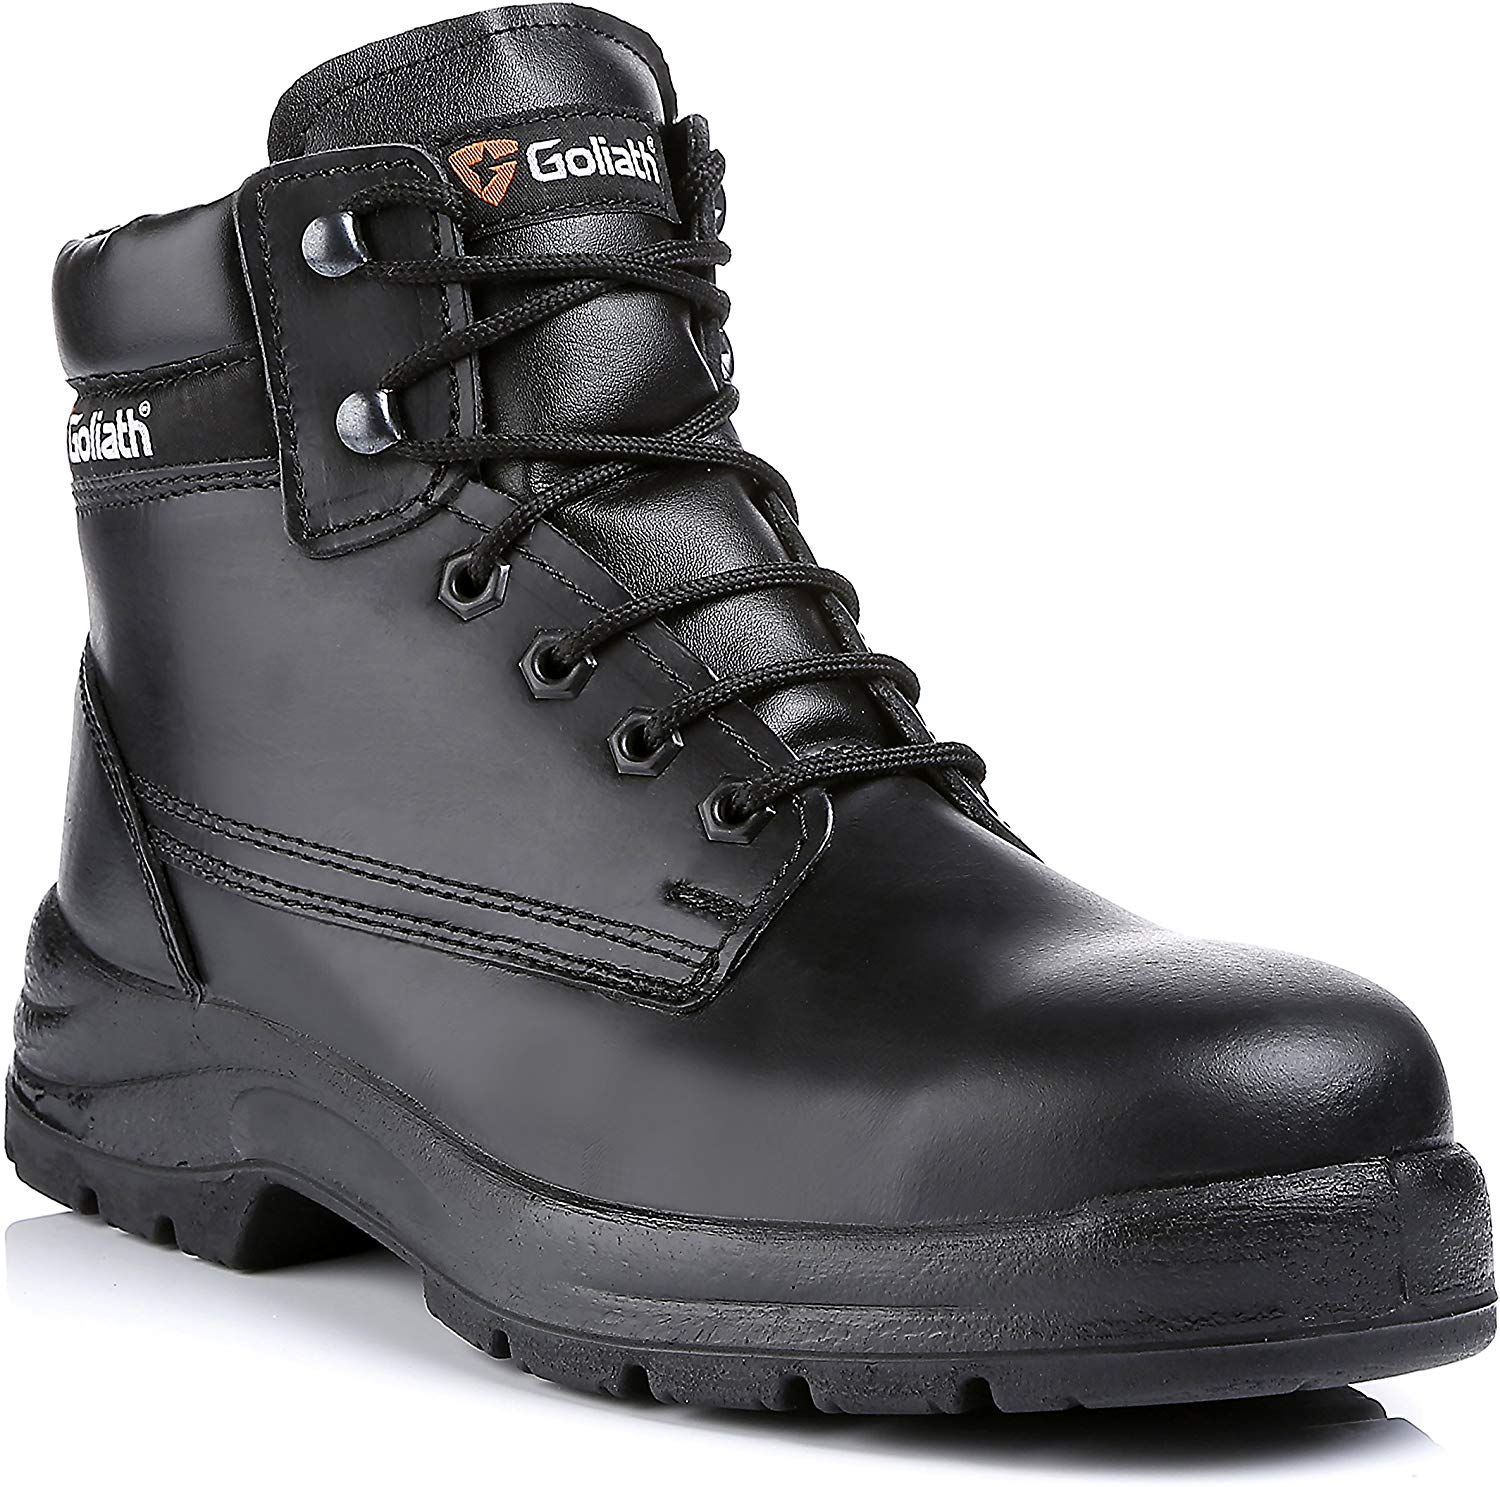 Goliath Boots